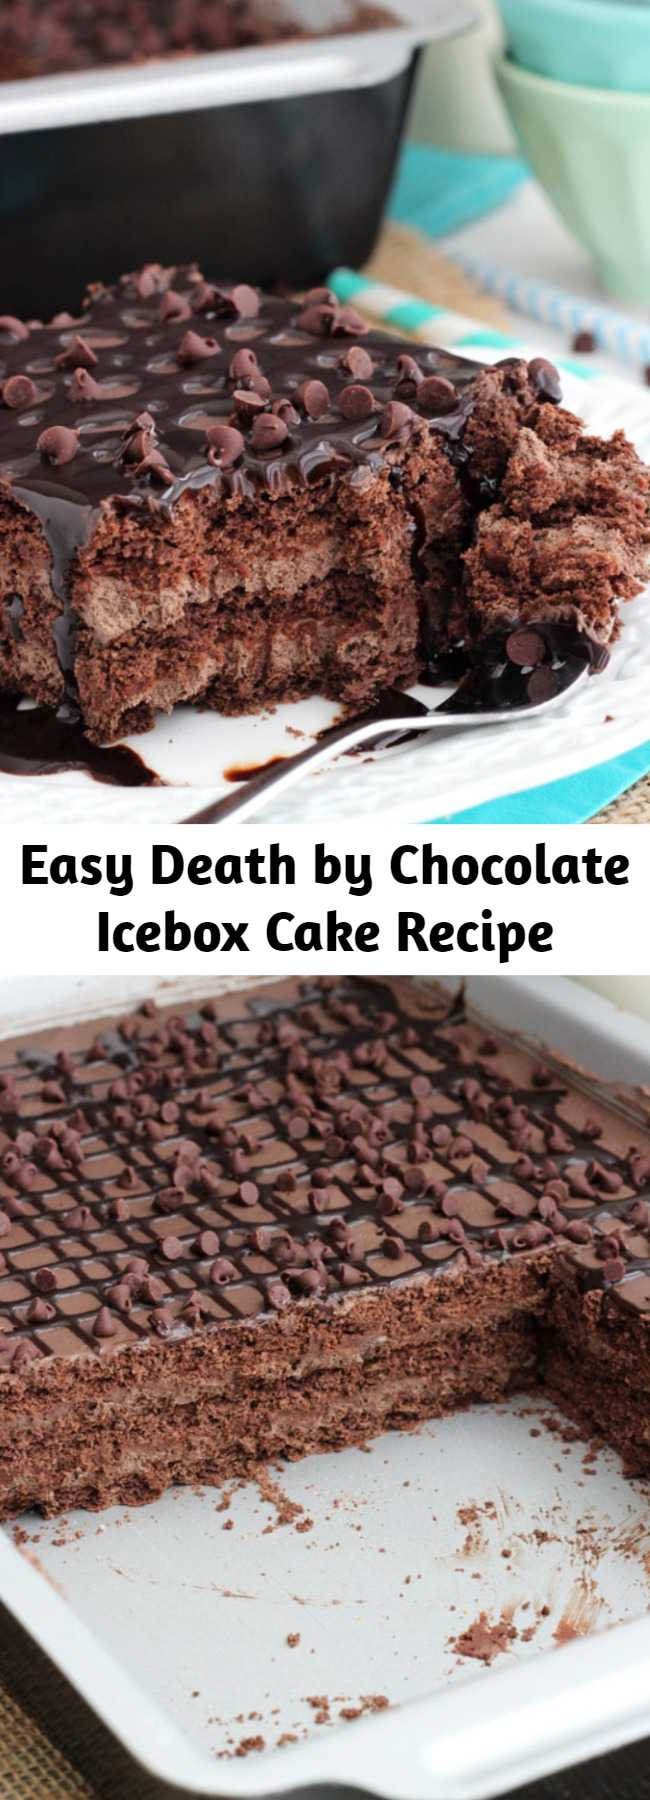 Easy Death by Chocolate Icebox Cake Recipe - This Death by Chocolate Icebox Cake was a huge hit! Layers of chocolate ganache, chocolate mousse and chocolate graham crackers are topped with chocolate sauce for a decadent treat that'll put you in a chocolate coma!